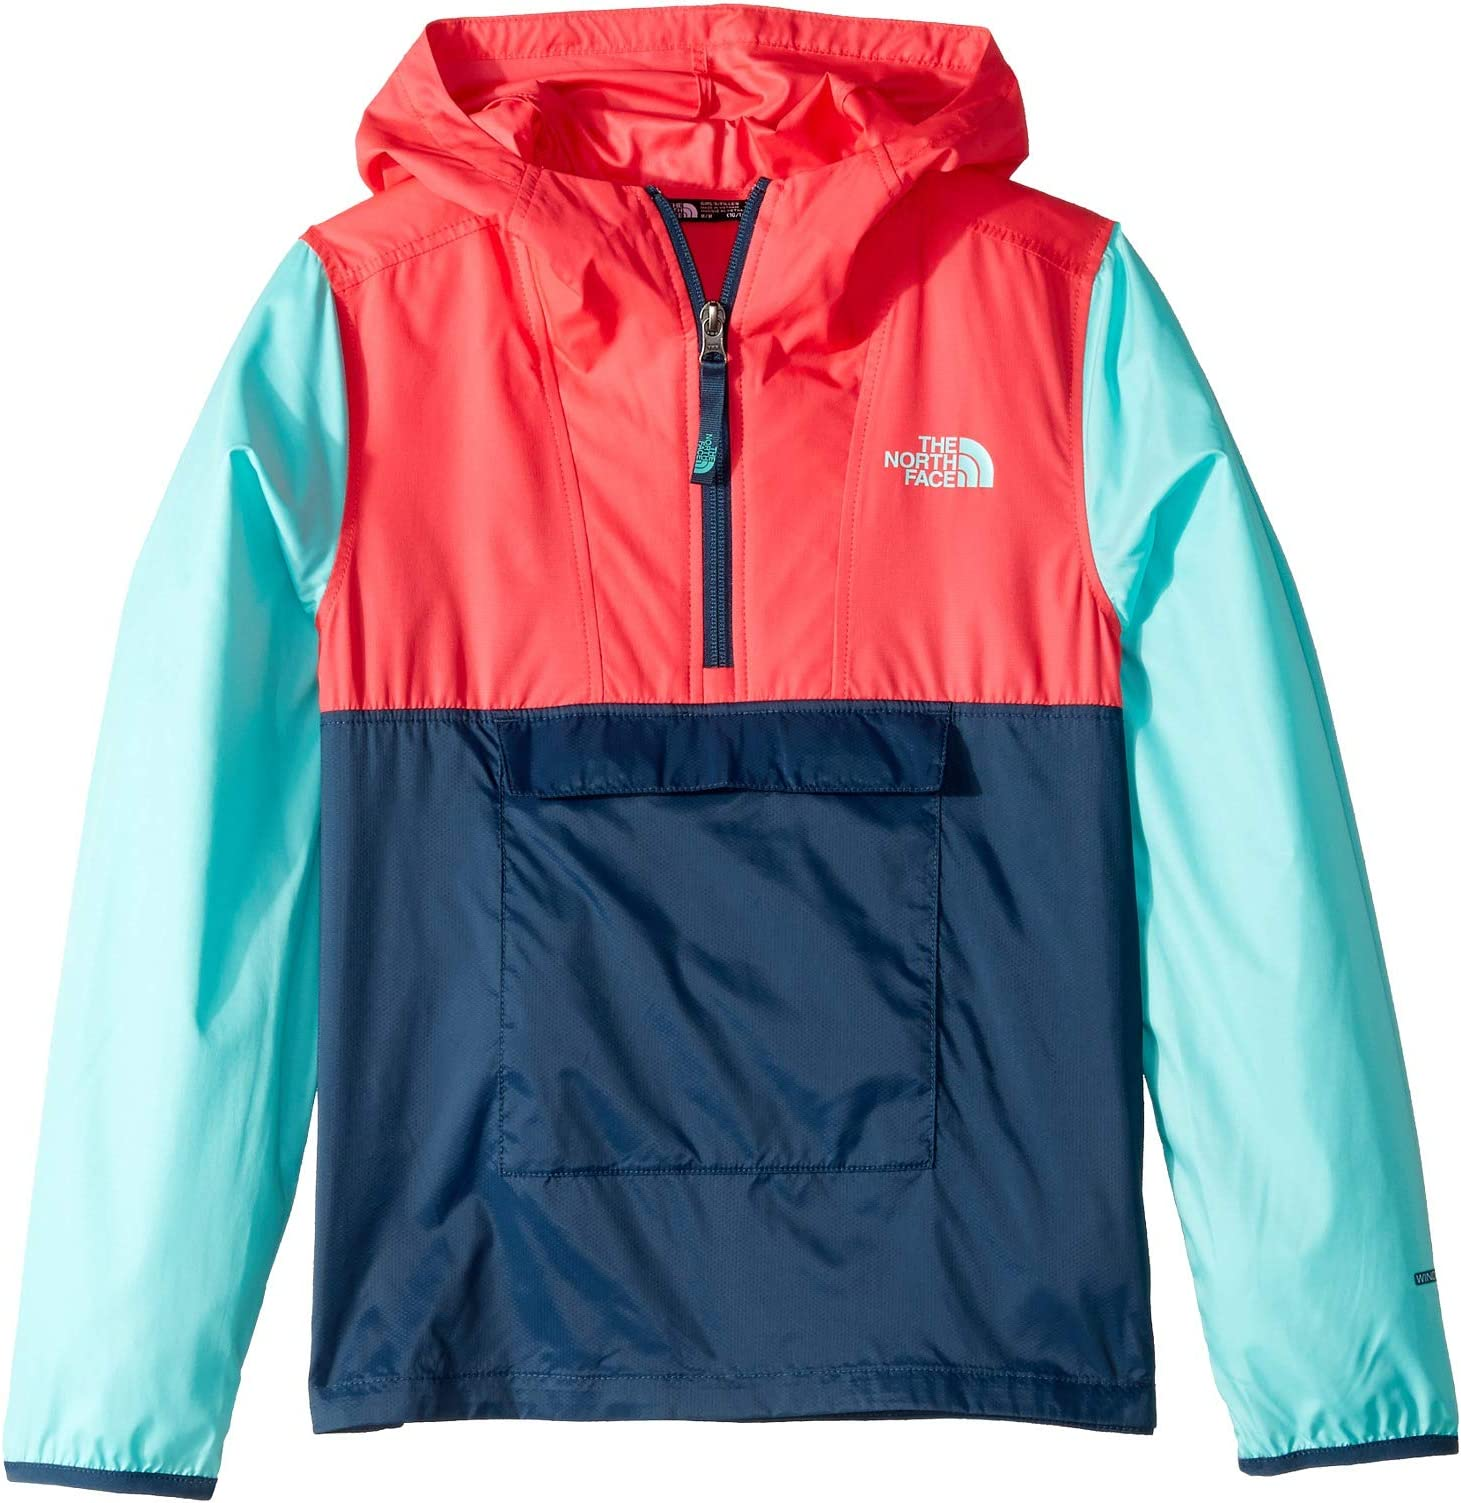 e7c5b1b67 The North Face Outerwear, Shoes, Bags, Clothing | Zappos.com